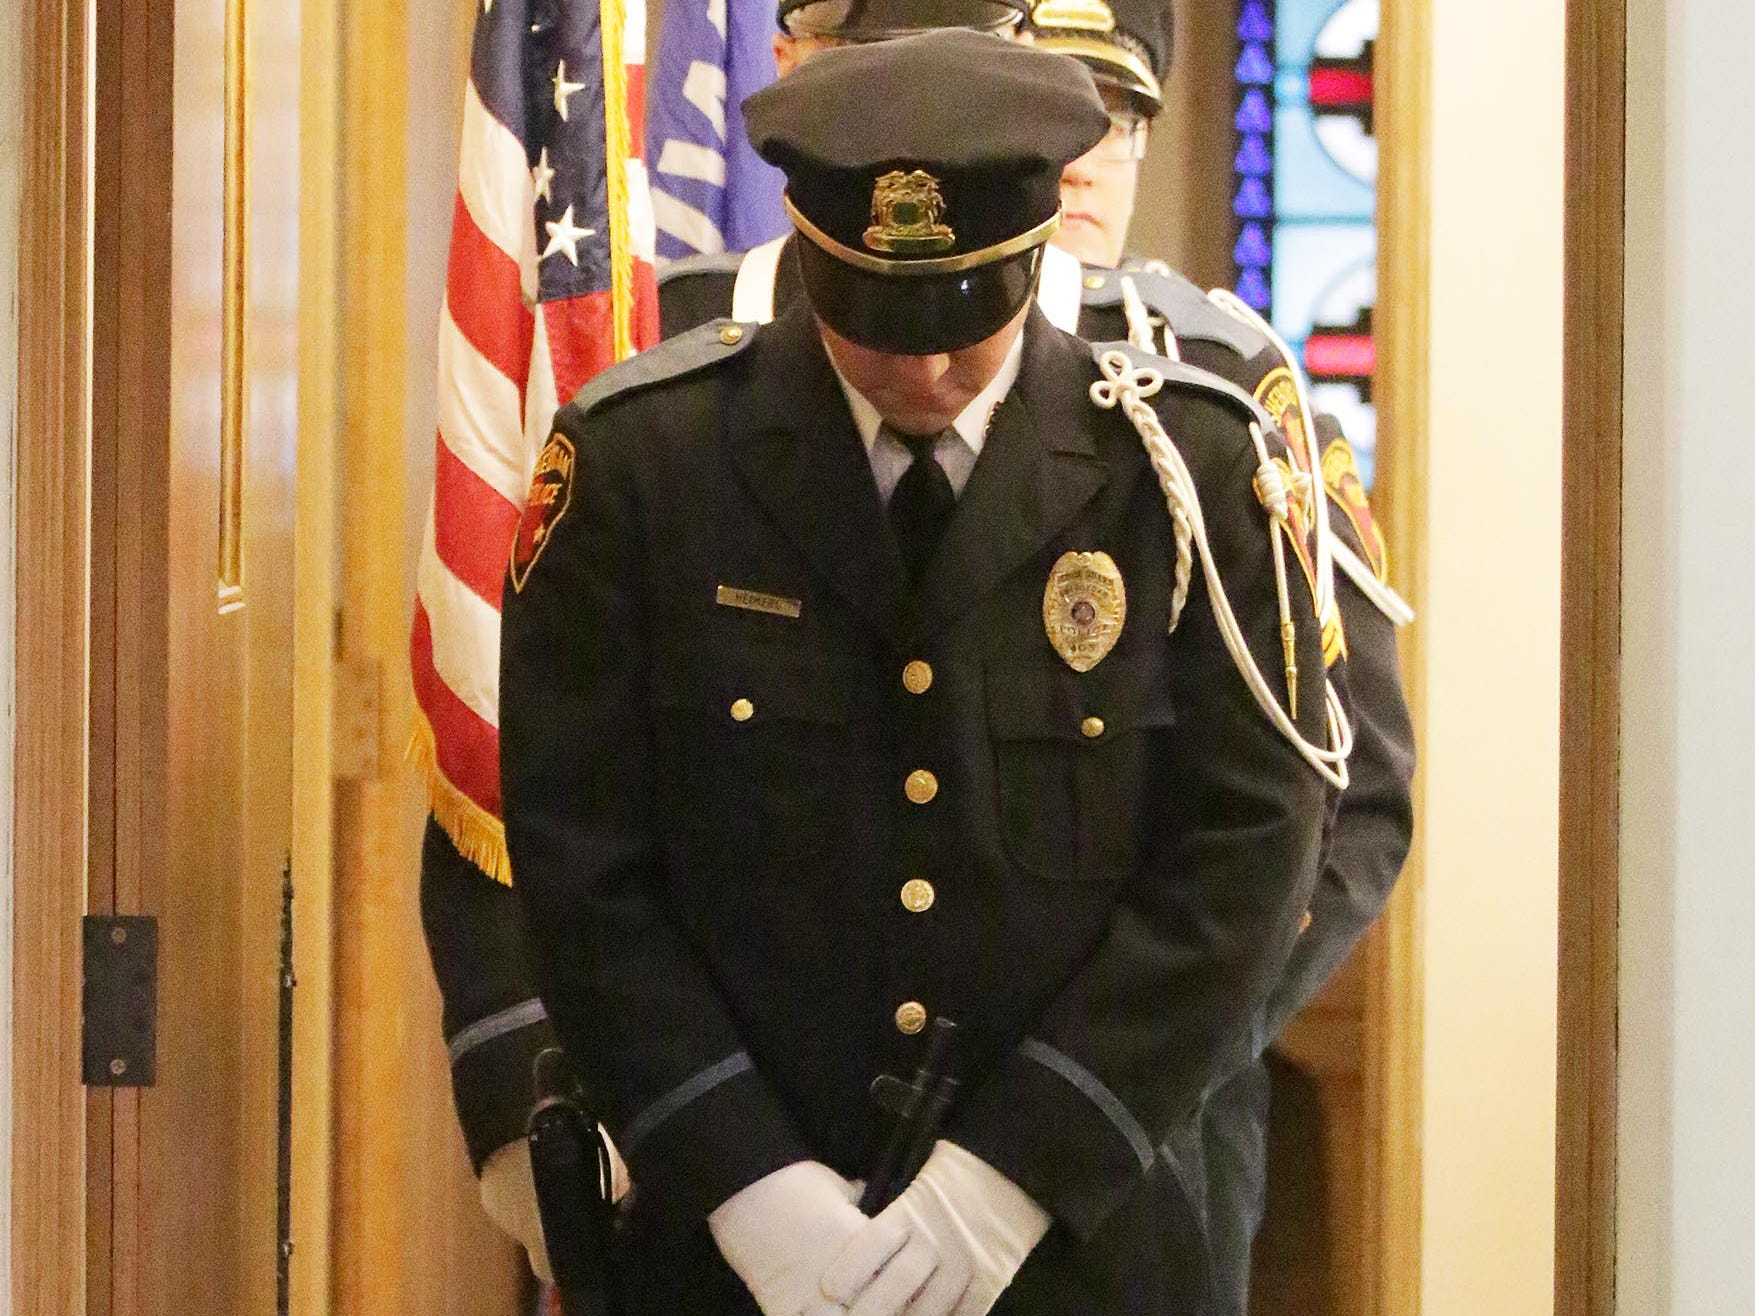 The Sheboygan Police Department Color Unit stands in prayer before the National Day of Prayer service, Thursday, May 2, 2019, at Fountain Park Church, in Sheboygan, Wis.